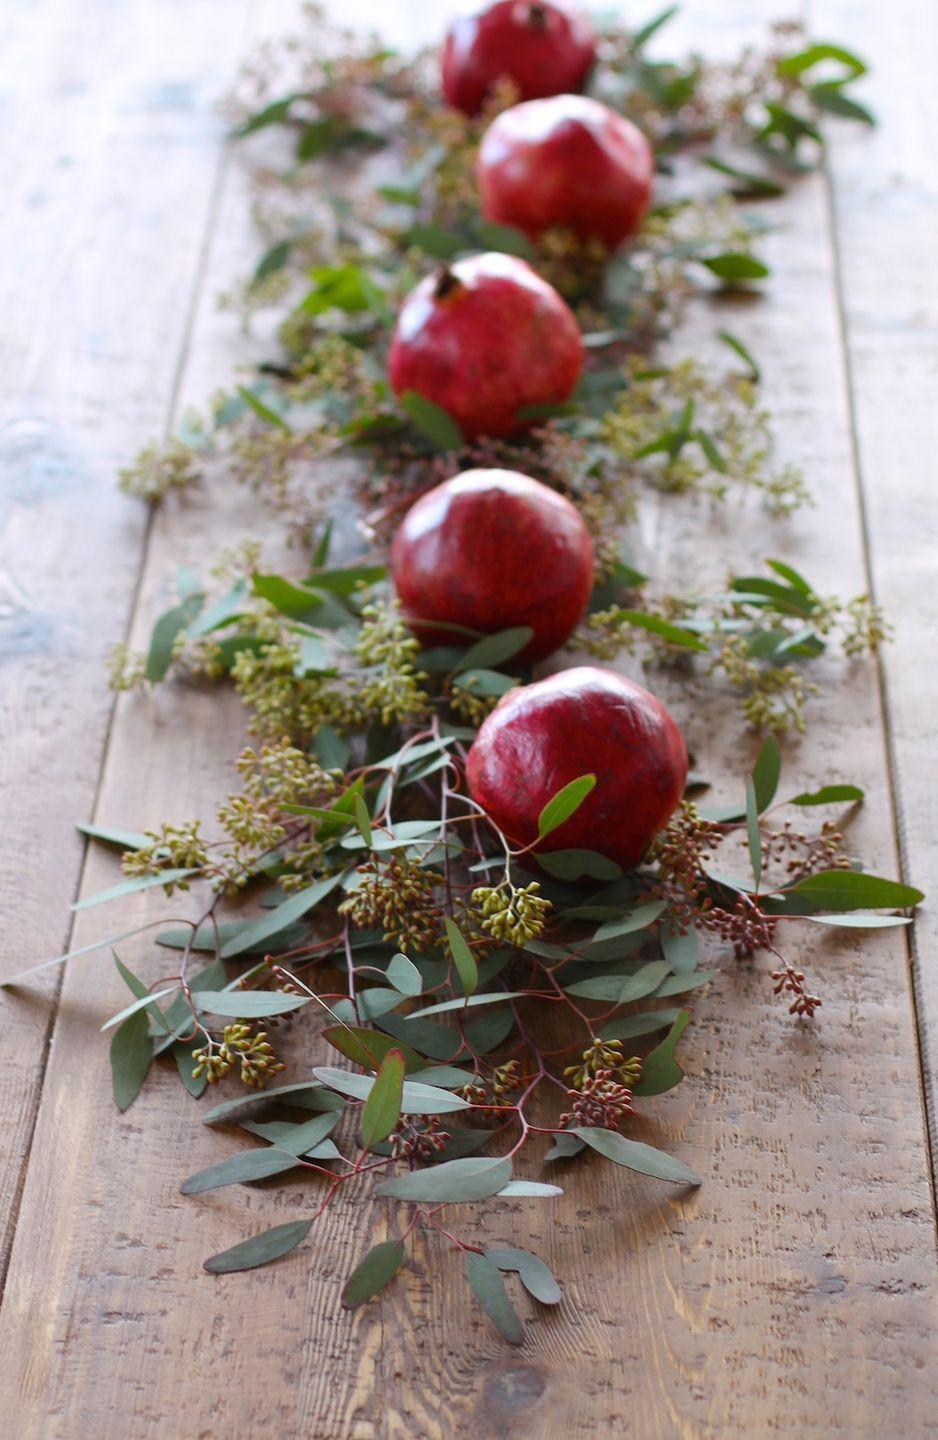 """<p>In ancient Greece, pomegranates were consumed on holy days. If the red fruit doesn't make it onto your Christmas menu, this table runner should keep the tradition alive.</p><p><a class=""""link rapid-noclick-resp"""" href=""""https://www.amazon.com/Gresorth-Lifelike-Artificial-Pomegranet-Decoration/dp/B0113Y4E3K?tag=syn-yahoo-20&ascsubtag=%5Bartid%7C10055.g.2196%5Bsrc%7Cyahoo-us"""" rel=""""nofollow noopener"""" target=""""_blank"""" data-ylk=""""slk:SHOP FAUX POMEGRANATES"""">SHOP FAUX POMEGRANATES</a></p><p><em><a href=""""http://julieblanner.com/5-minute-floral-christmas-table-runner/"""" rel=""""nofollow noopener"""" target=""""_blank"""" data-ylk=""""slk:Get the tutorial from Julie Blanner »"""" class=""""link rapid-noclick-resp"""">Get the tutorial from Julie Blanner »</a></em></p>"""